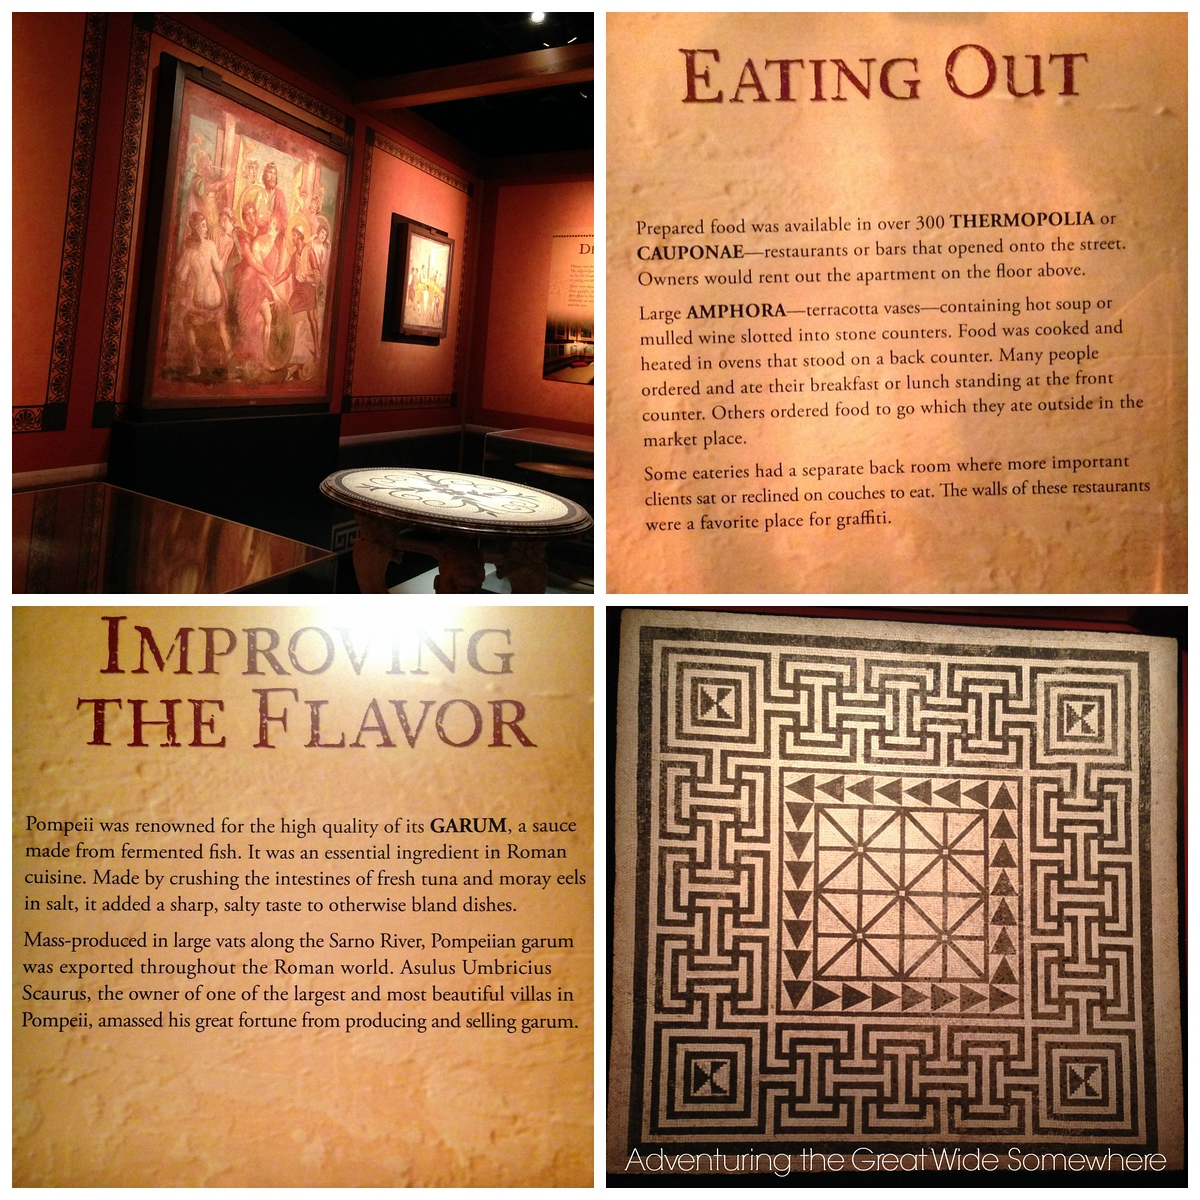 Informational Signs on Eating Out and Improving the Flavor at the Pompeii Exhibit in Seattle